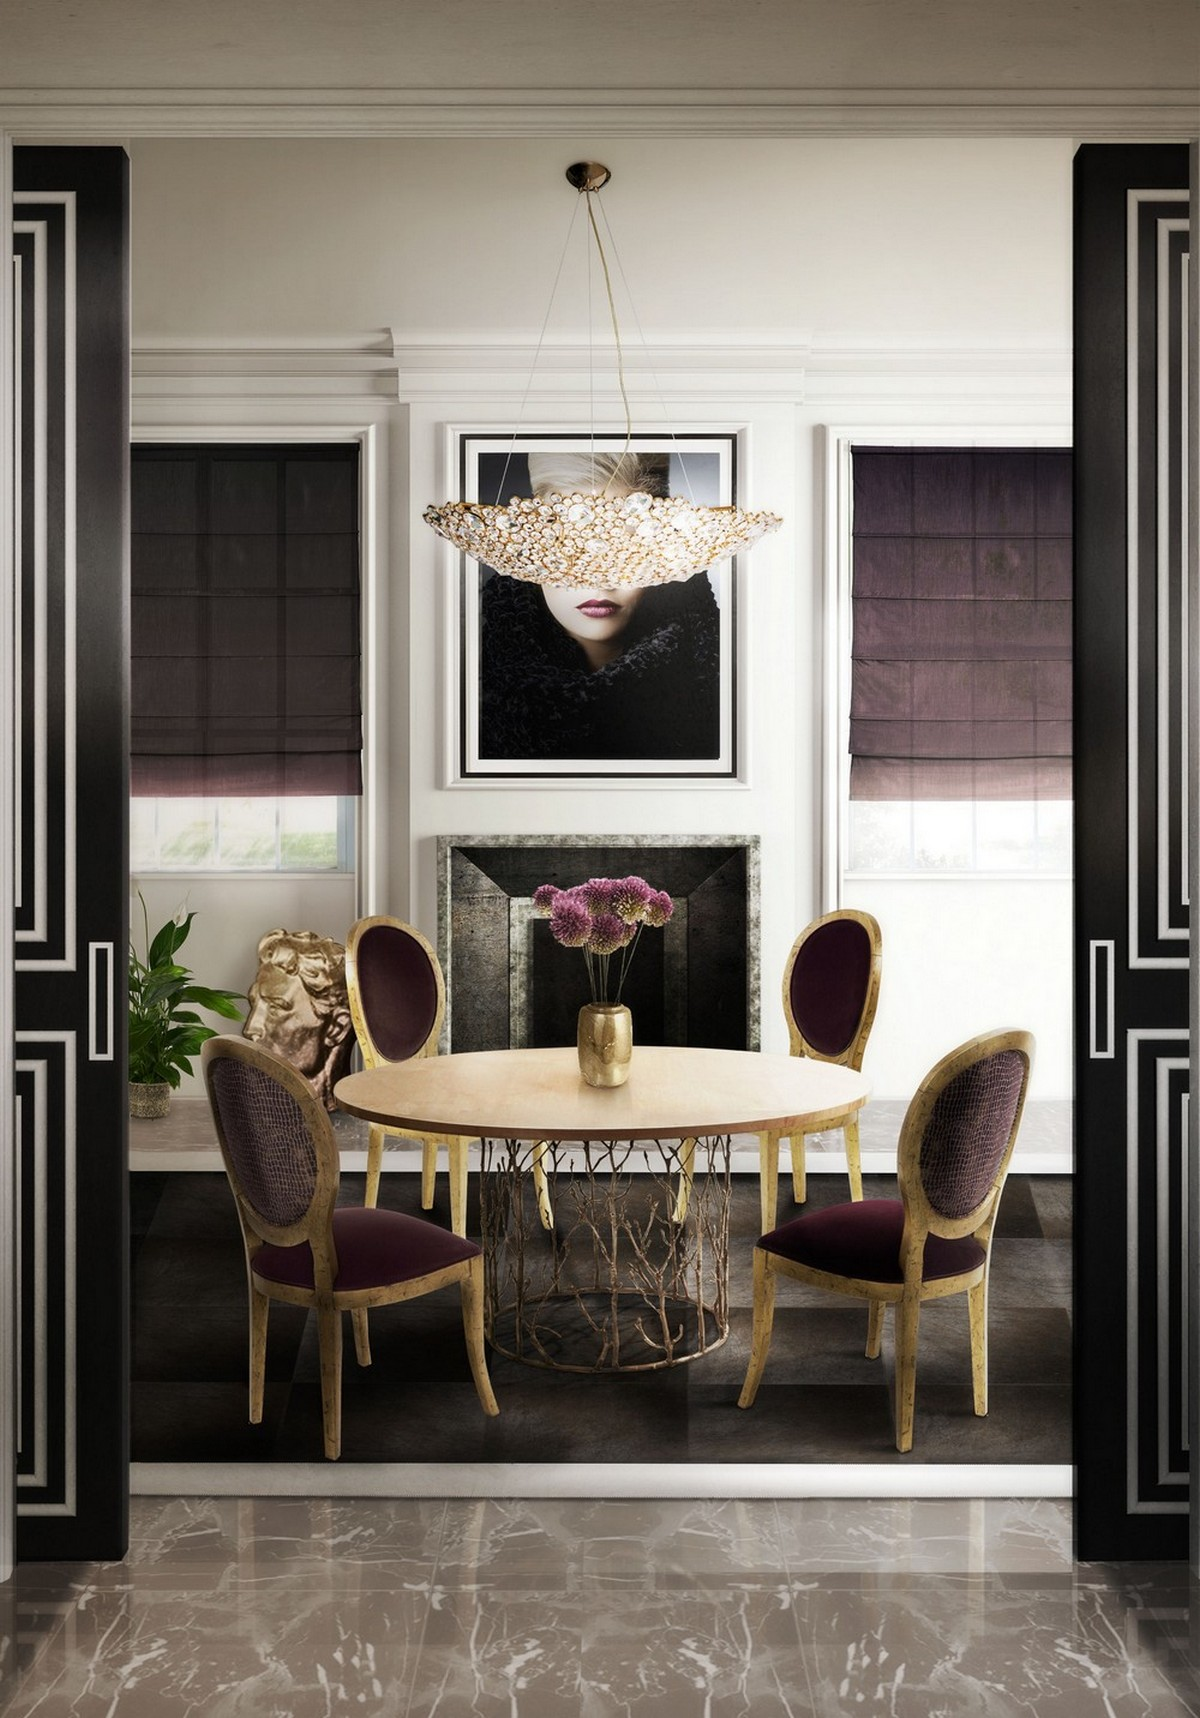 Enchanted Dining Table: Let Dining Rooms Shine Forever dining table Enchanted Dining Table: Let Dining Rooms Shine Forever 4